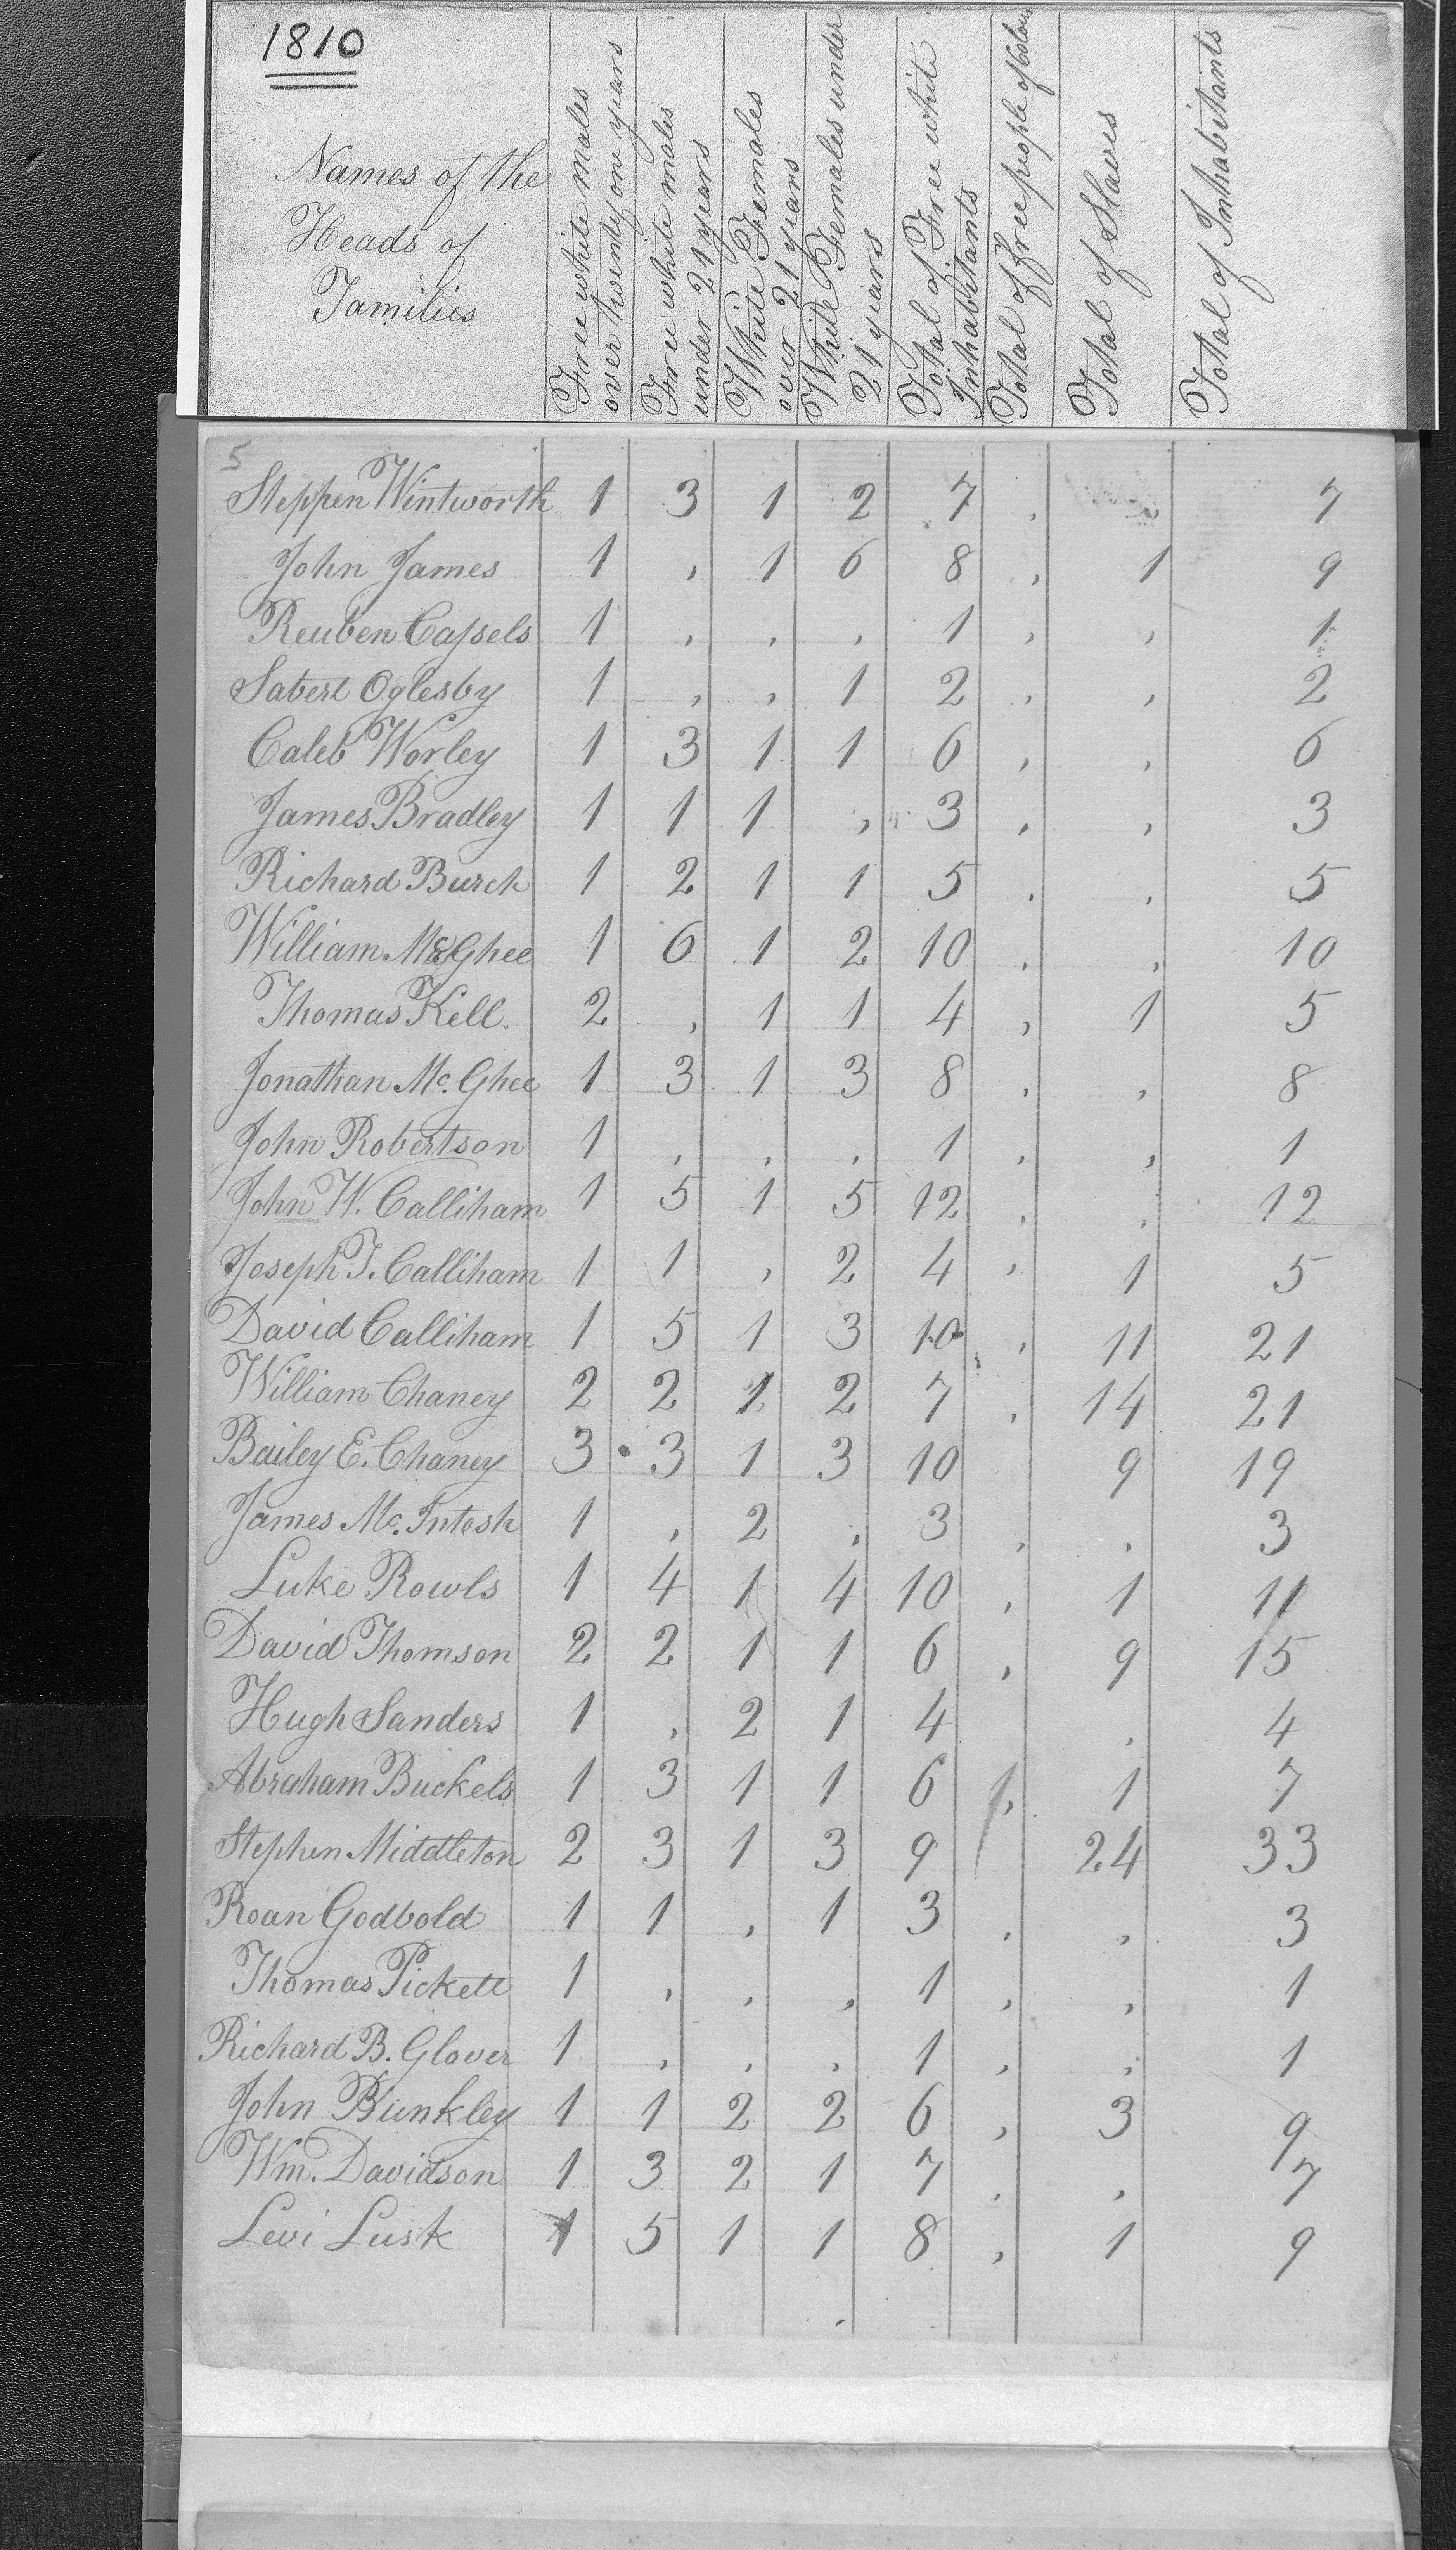 Jon Magee, Richard Burch, Will Magee and James Families in 1810 living in Franklin Co MS